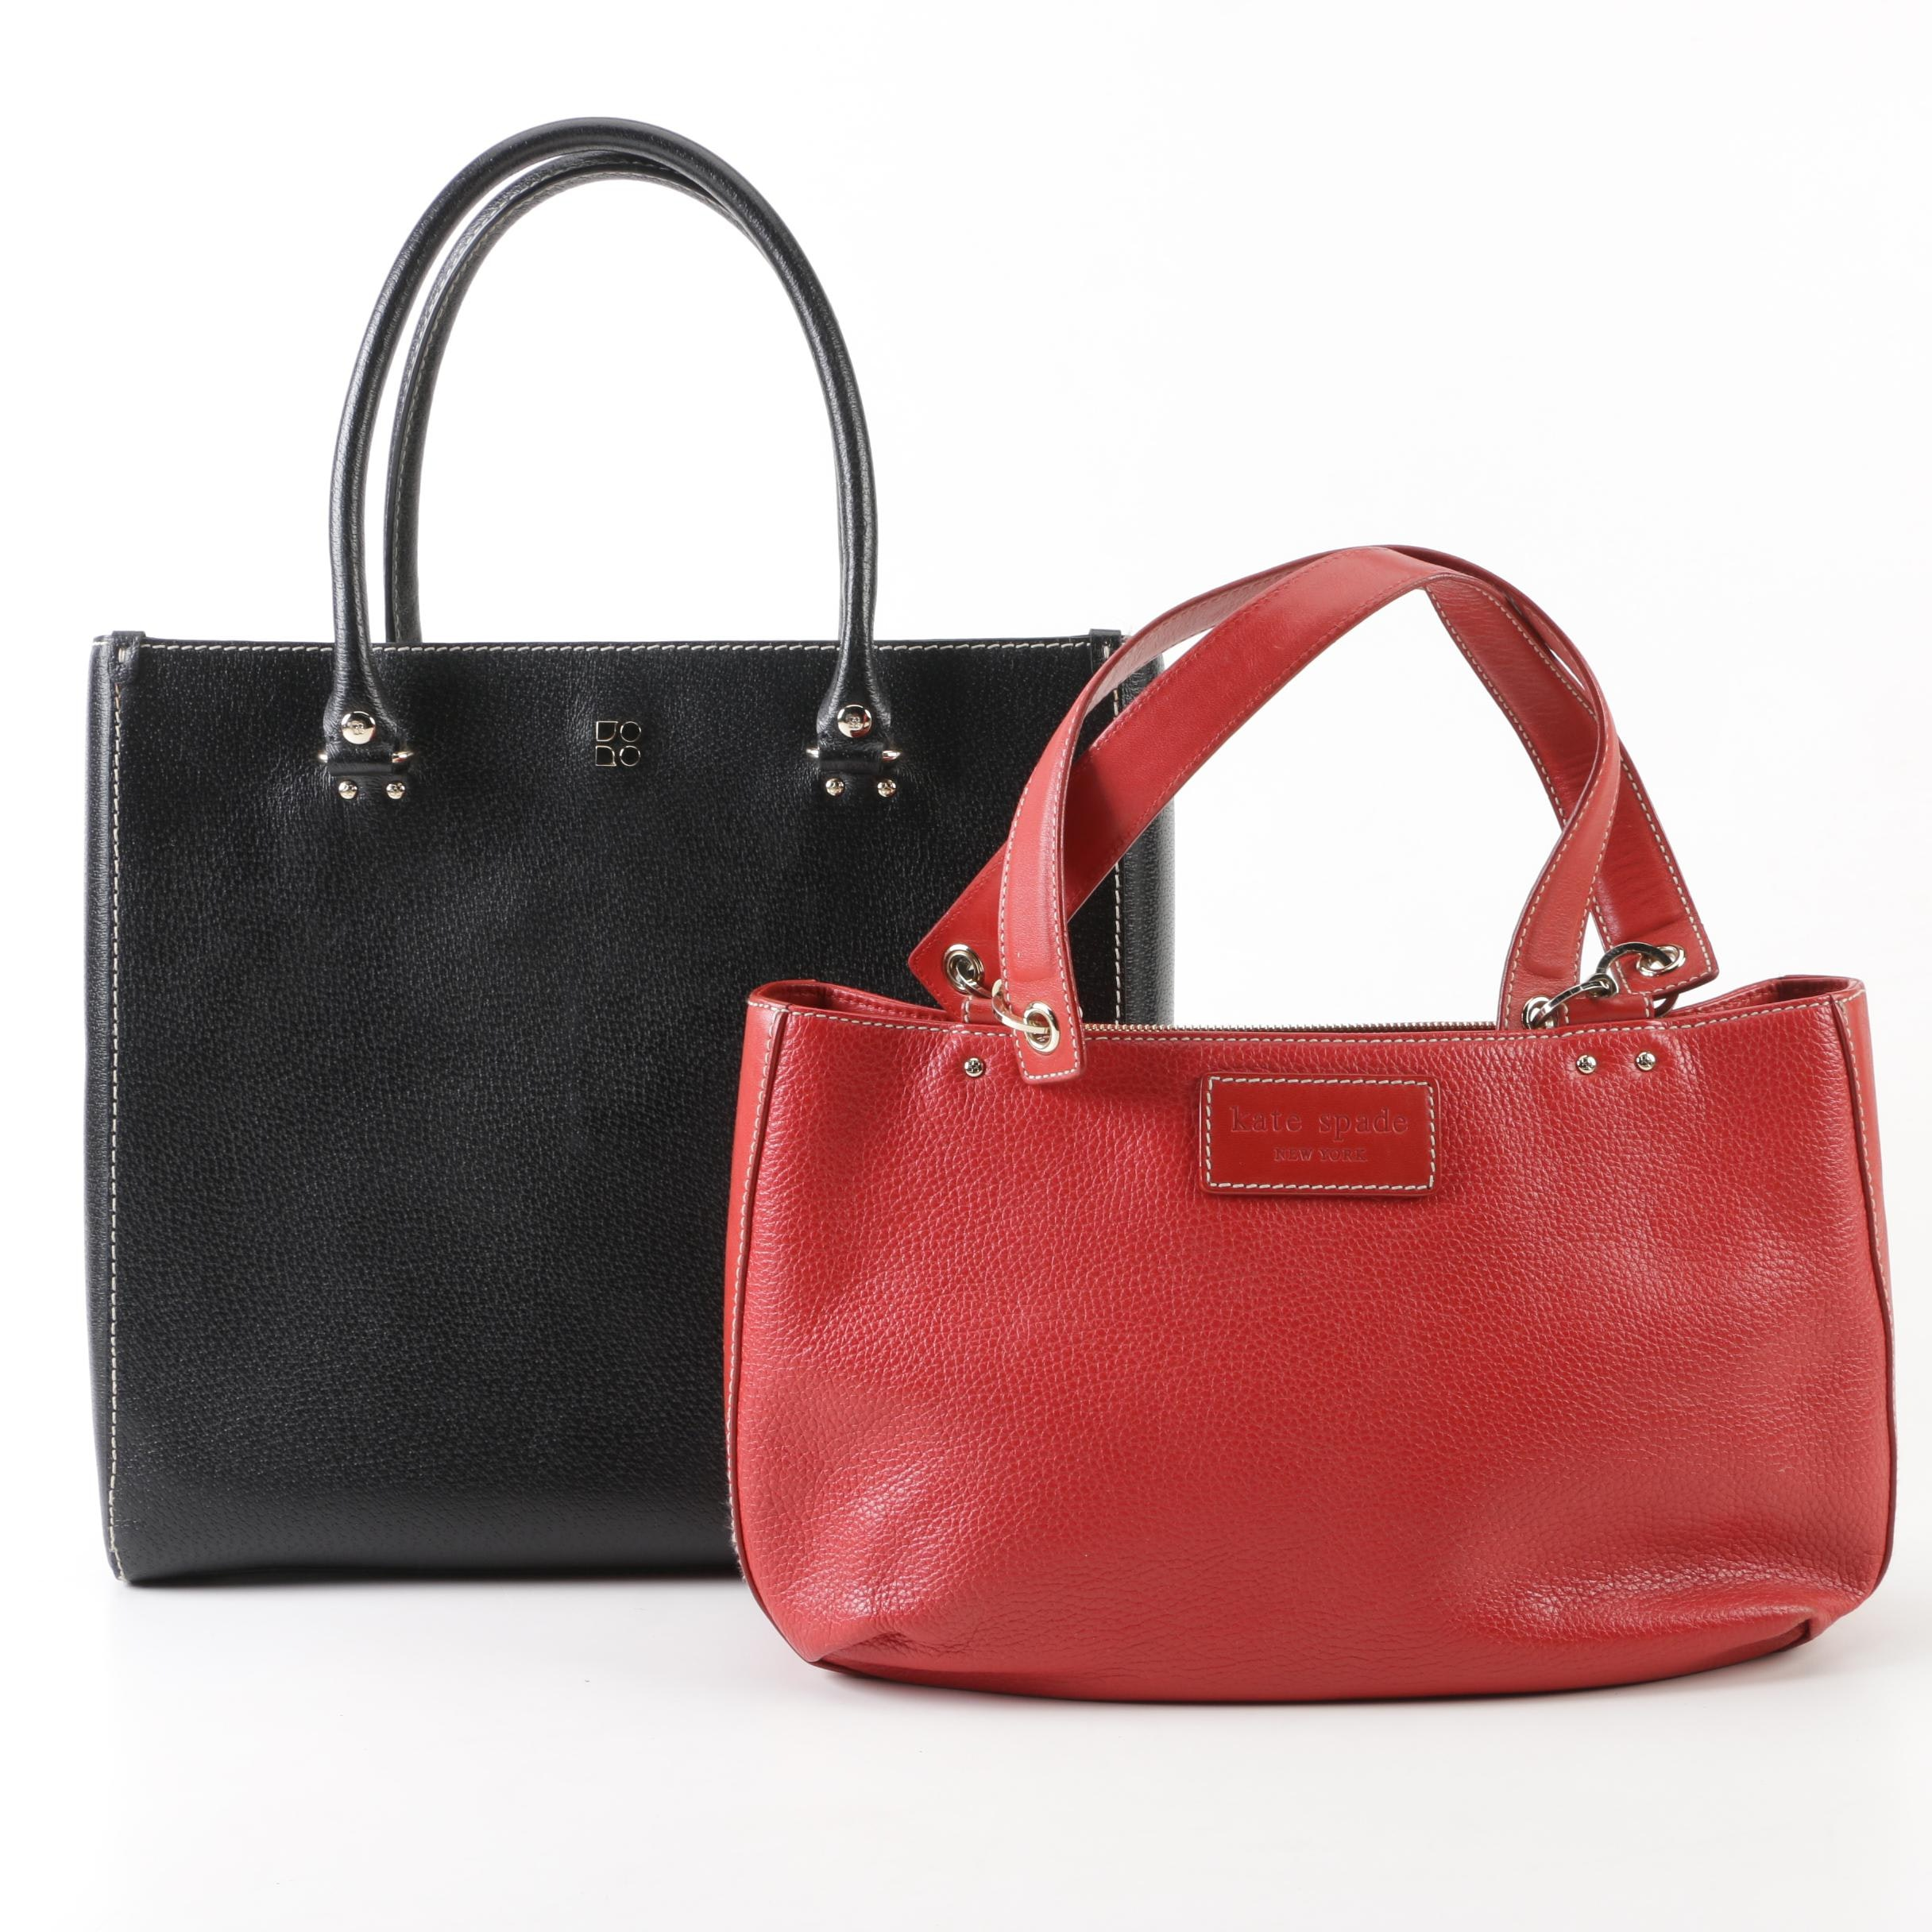 Kate Spade New York Leather Handbags